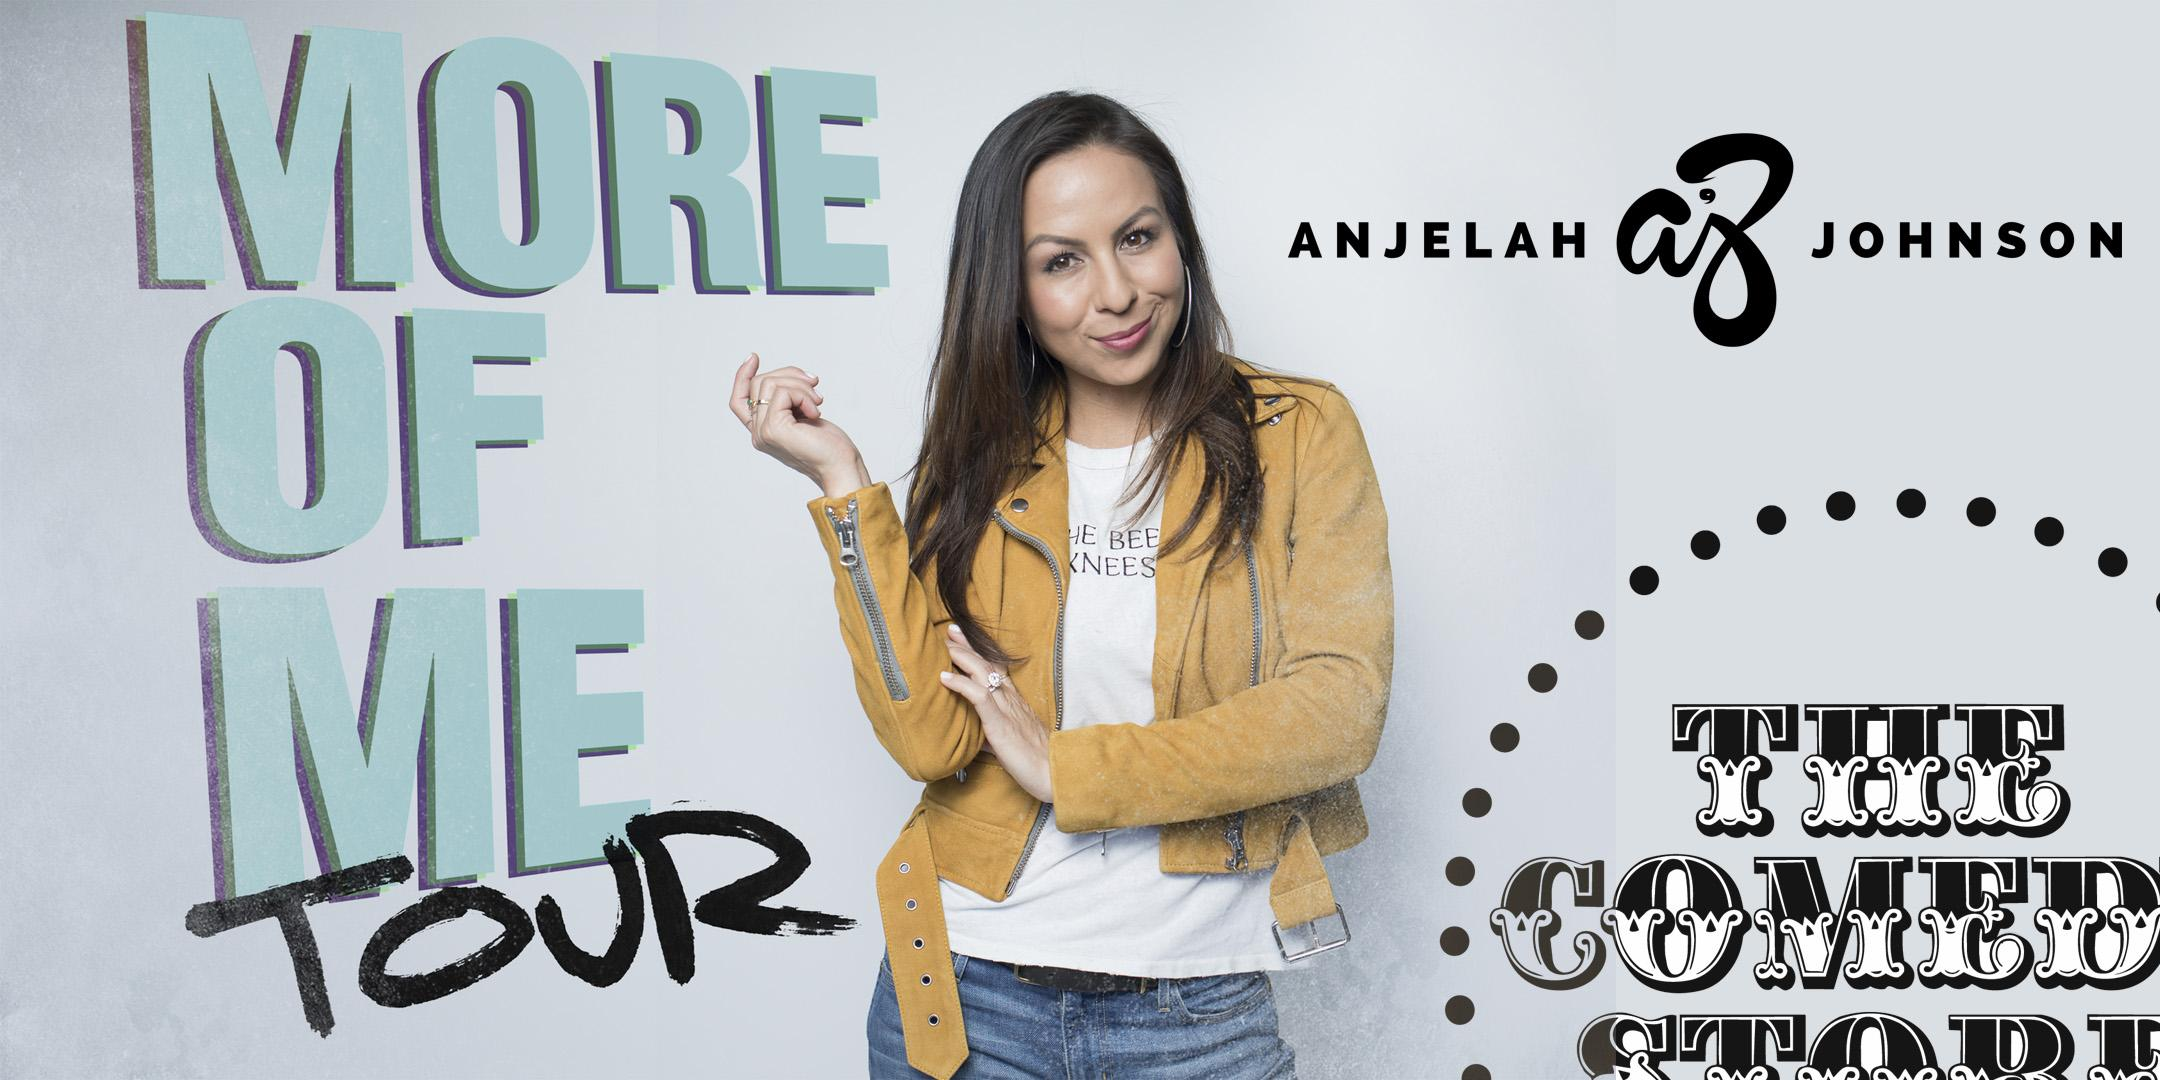 Anjelah Johnson - March 9th - Saturday 9:45pm